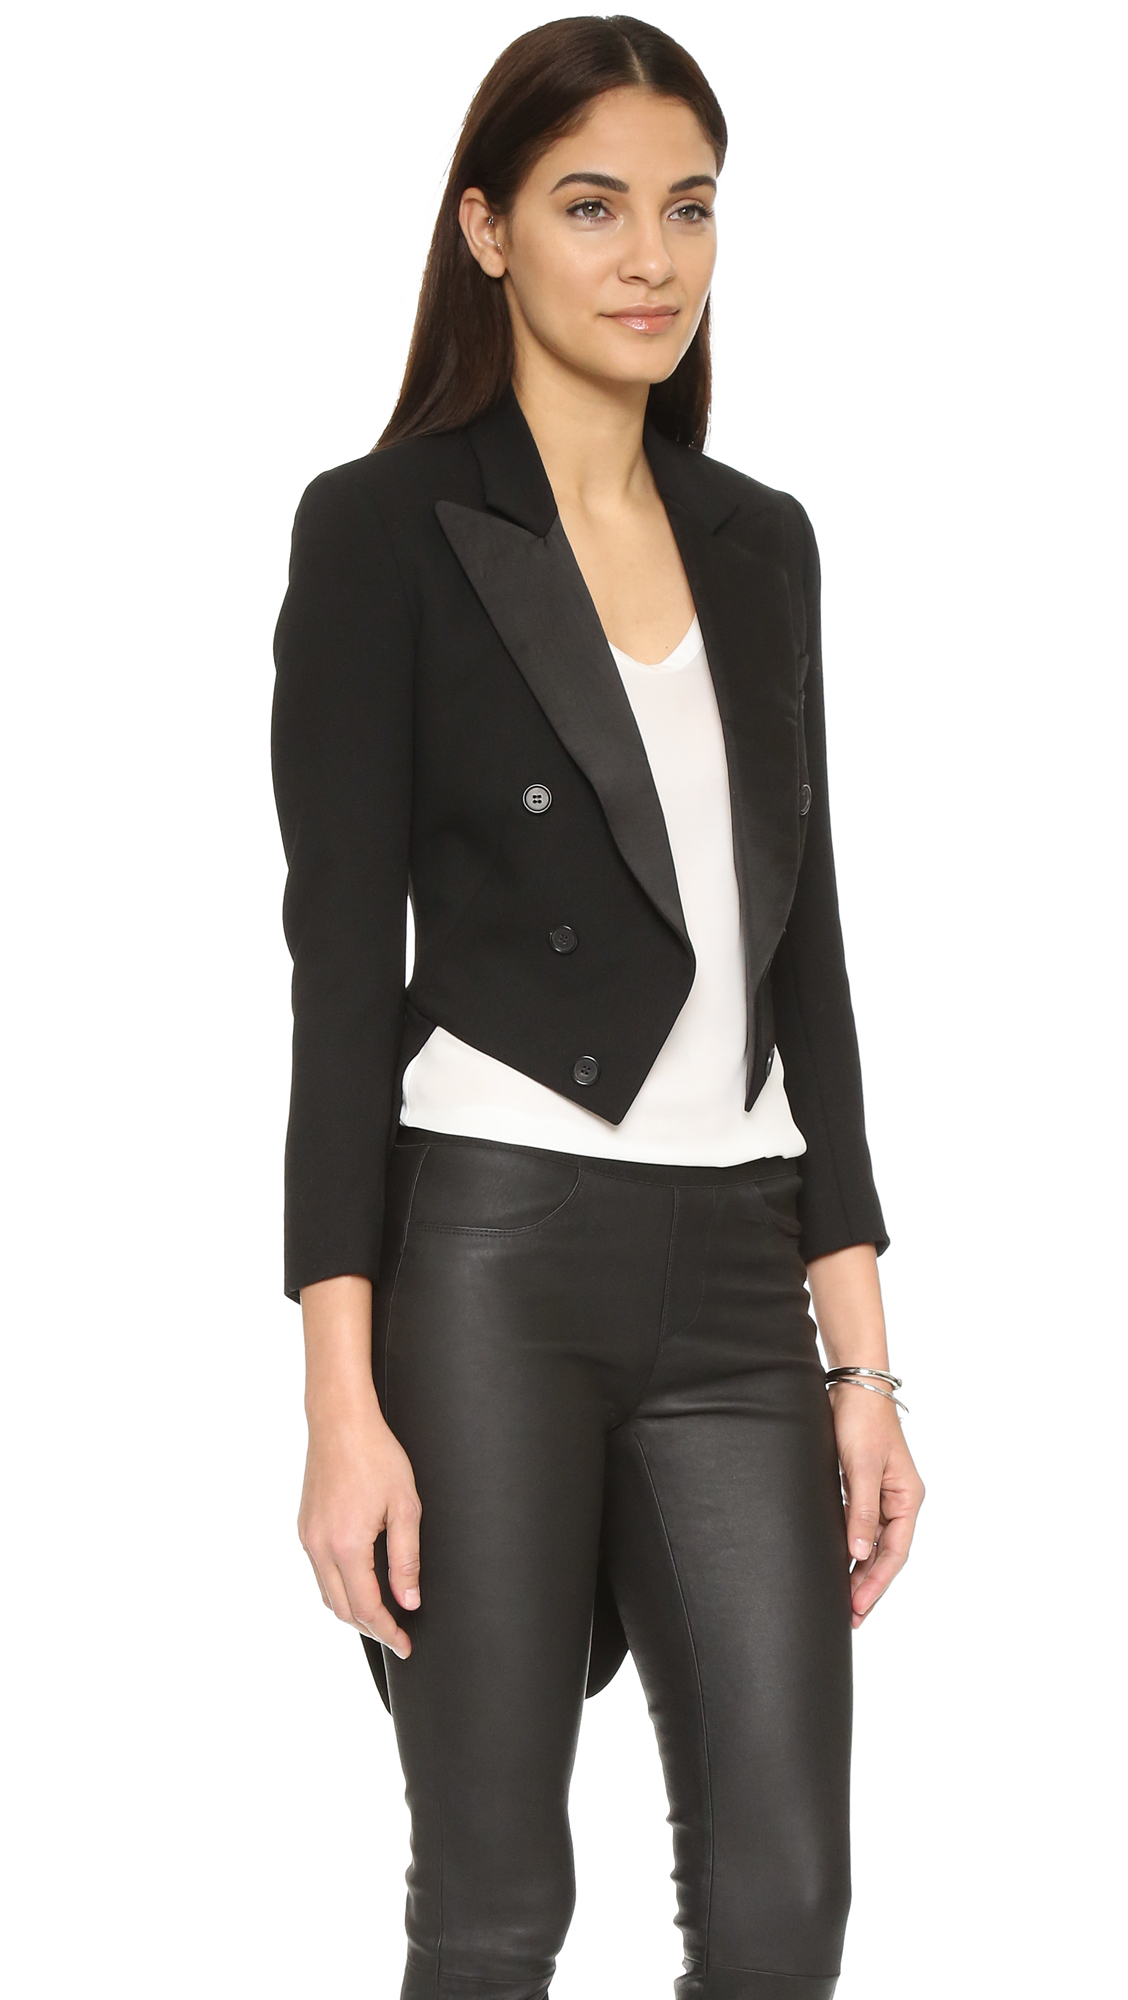 Find great deals on eBay for tailcoat women. Shop with confidence.